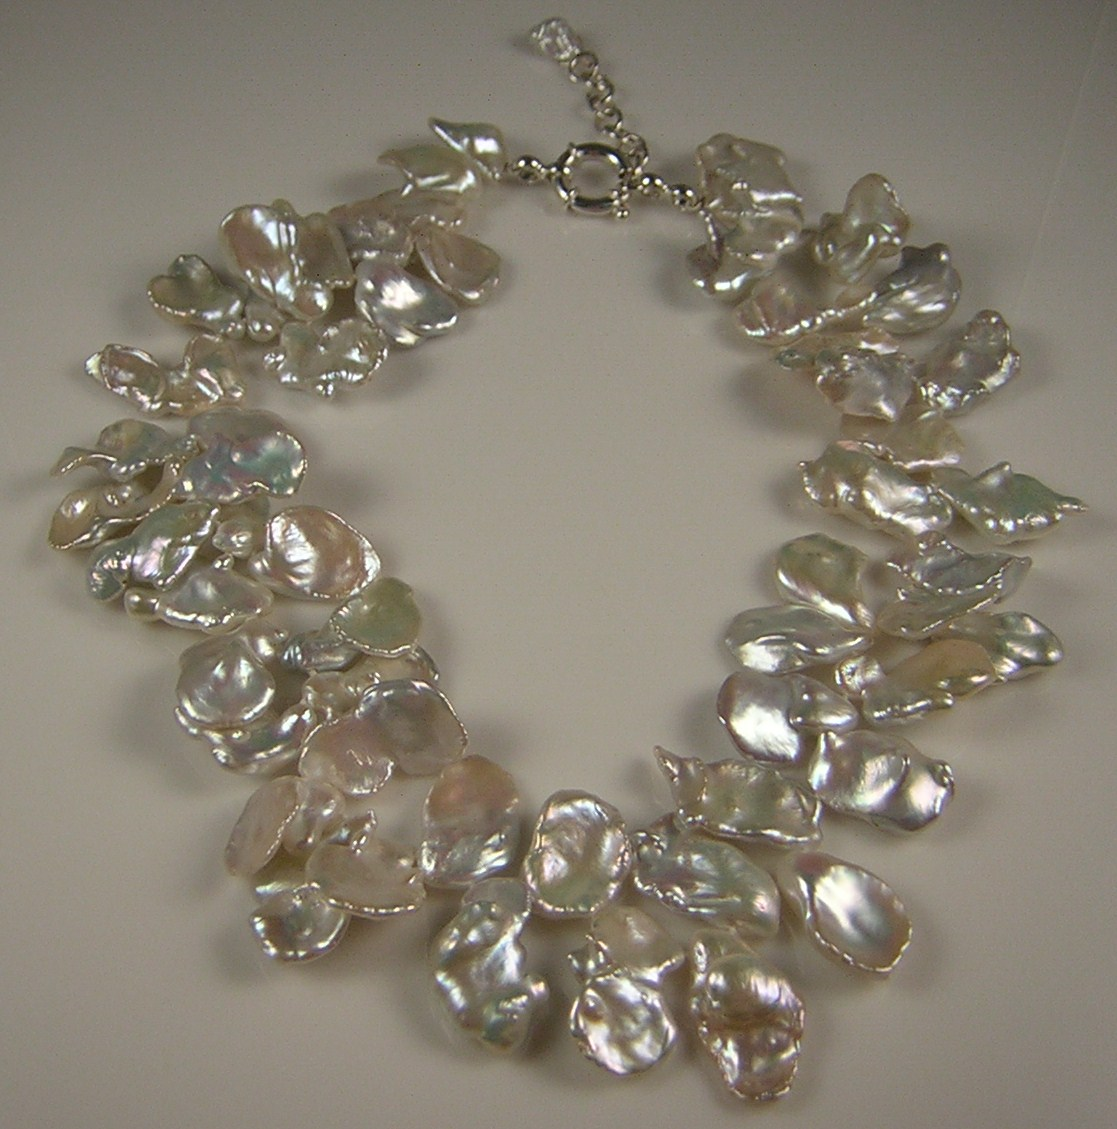 platinum necklace | Search Results | Dunia Pictures